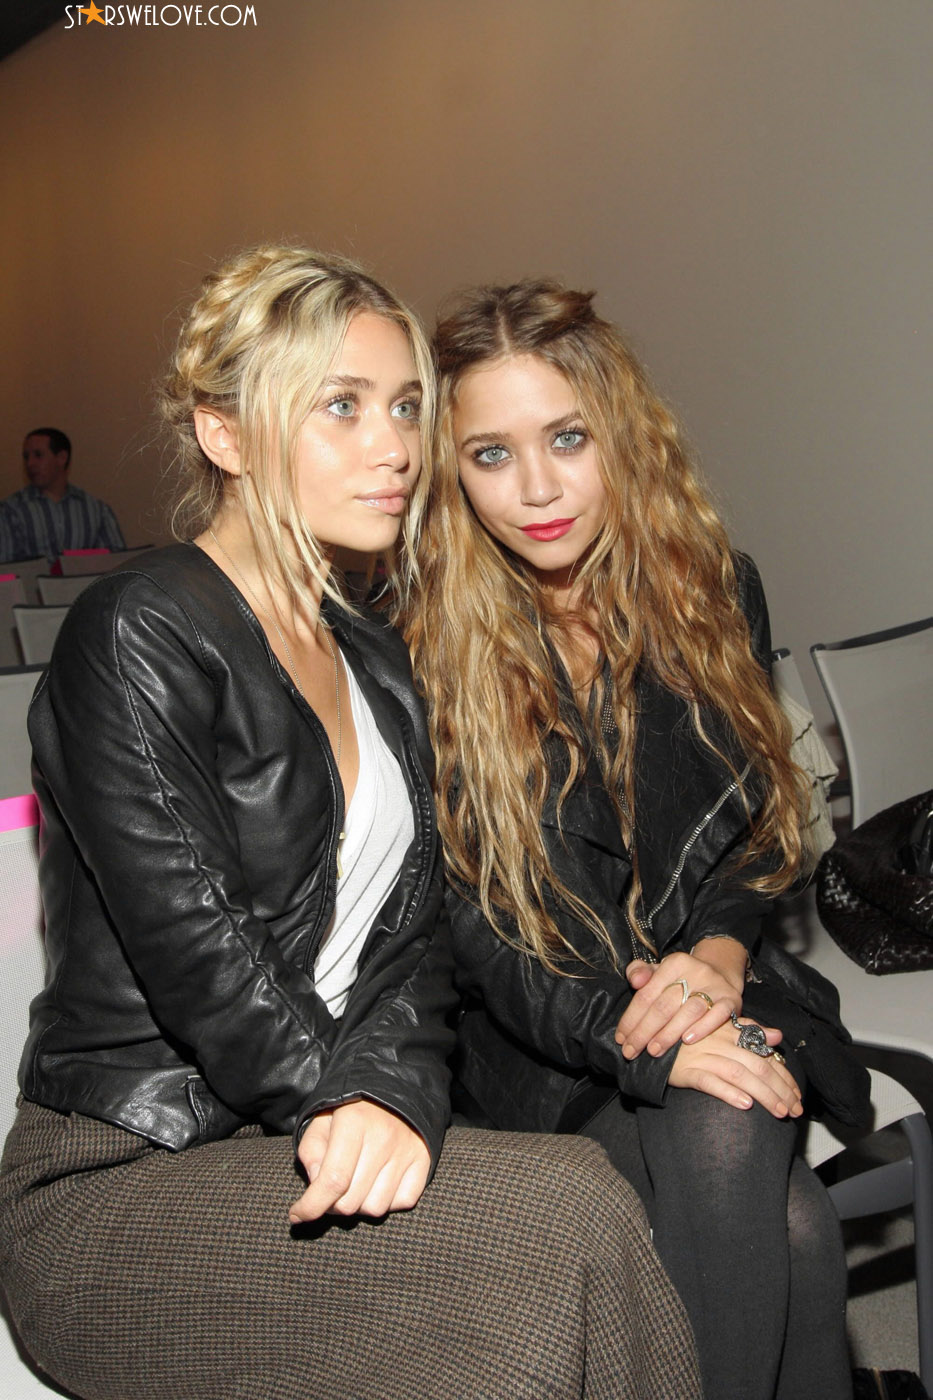 Olsen Twins photo (olsen_twins039, 933 x 1400 pixels, 296 kB)